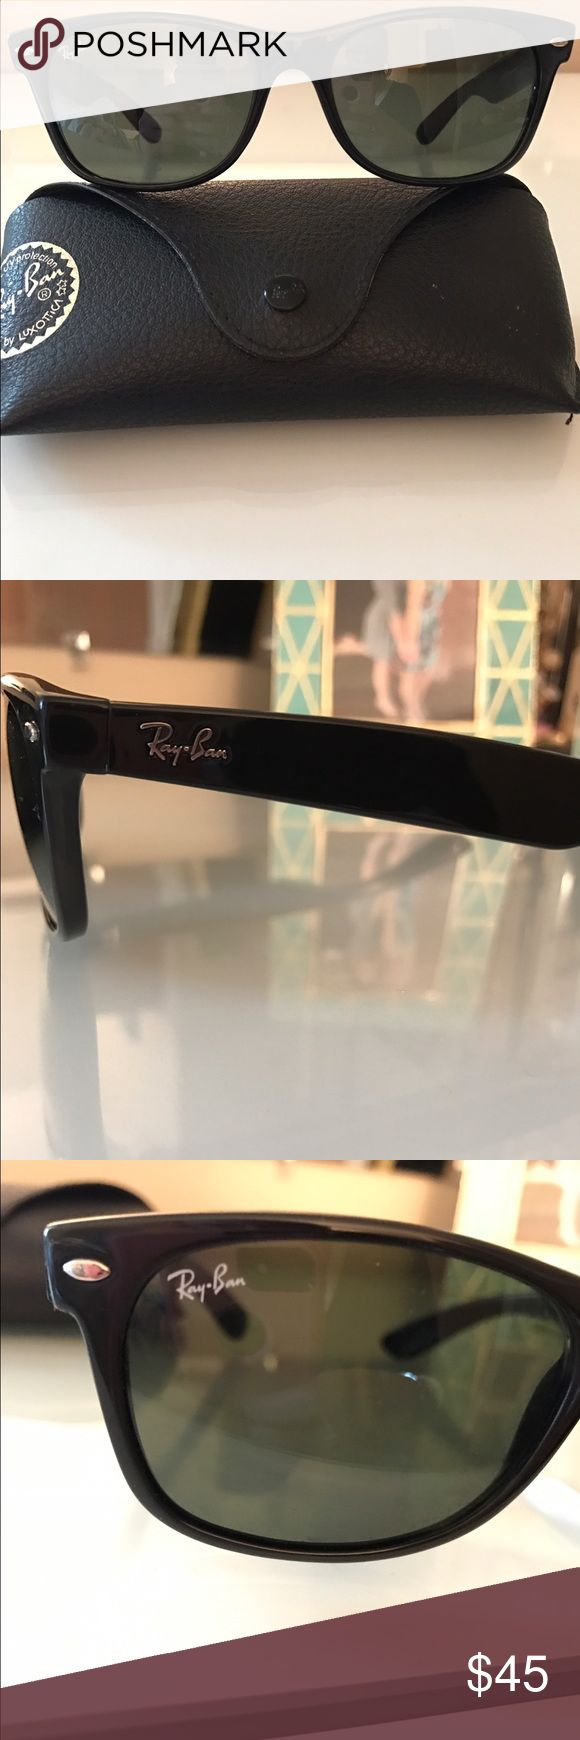 Authentic Black Ray Bans Wayfarer Sunglasses I have a pair of great black Ray Bans Wayfarer Sunglasses! These are in great condition and they make for the most classic Ray Bans look. They come with the case. Make me an offer! Ray-Ban Accessories Sunglasses